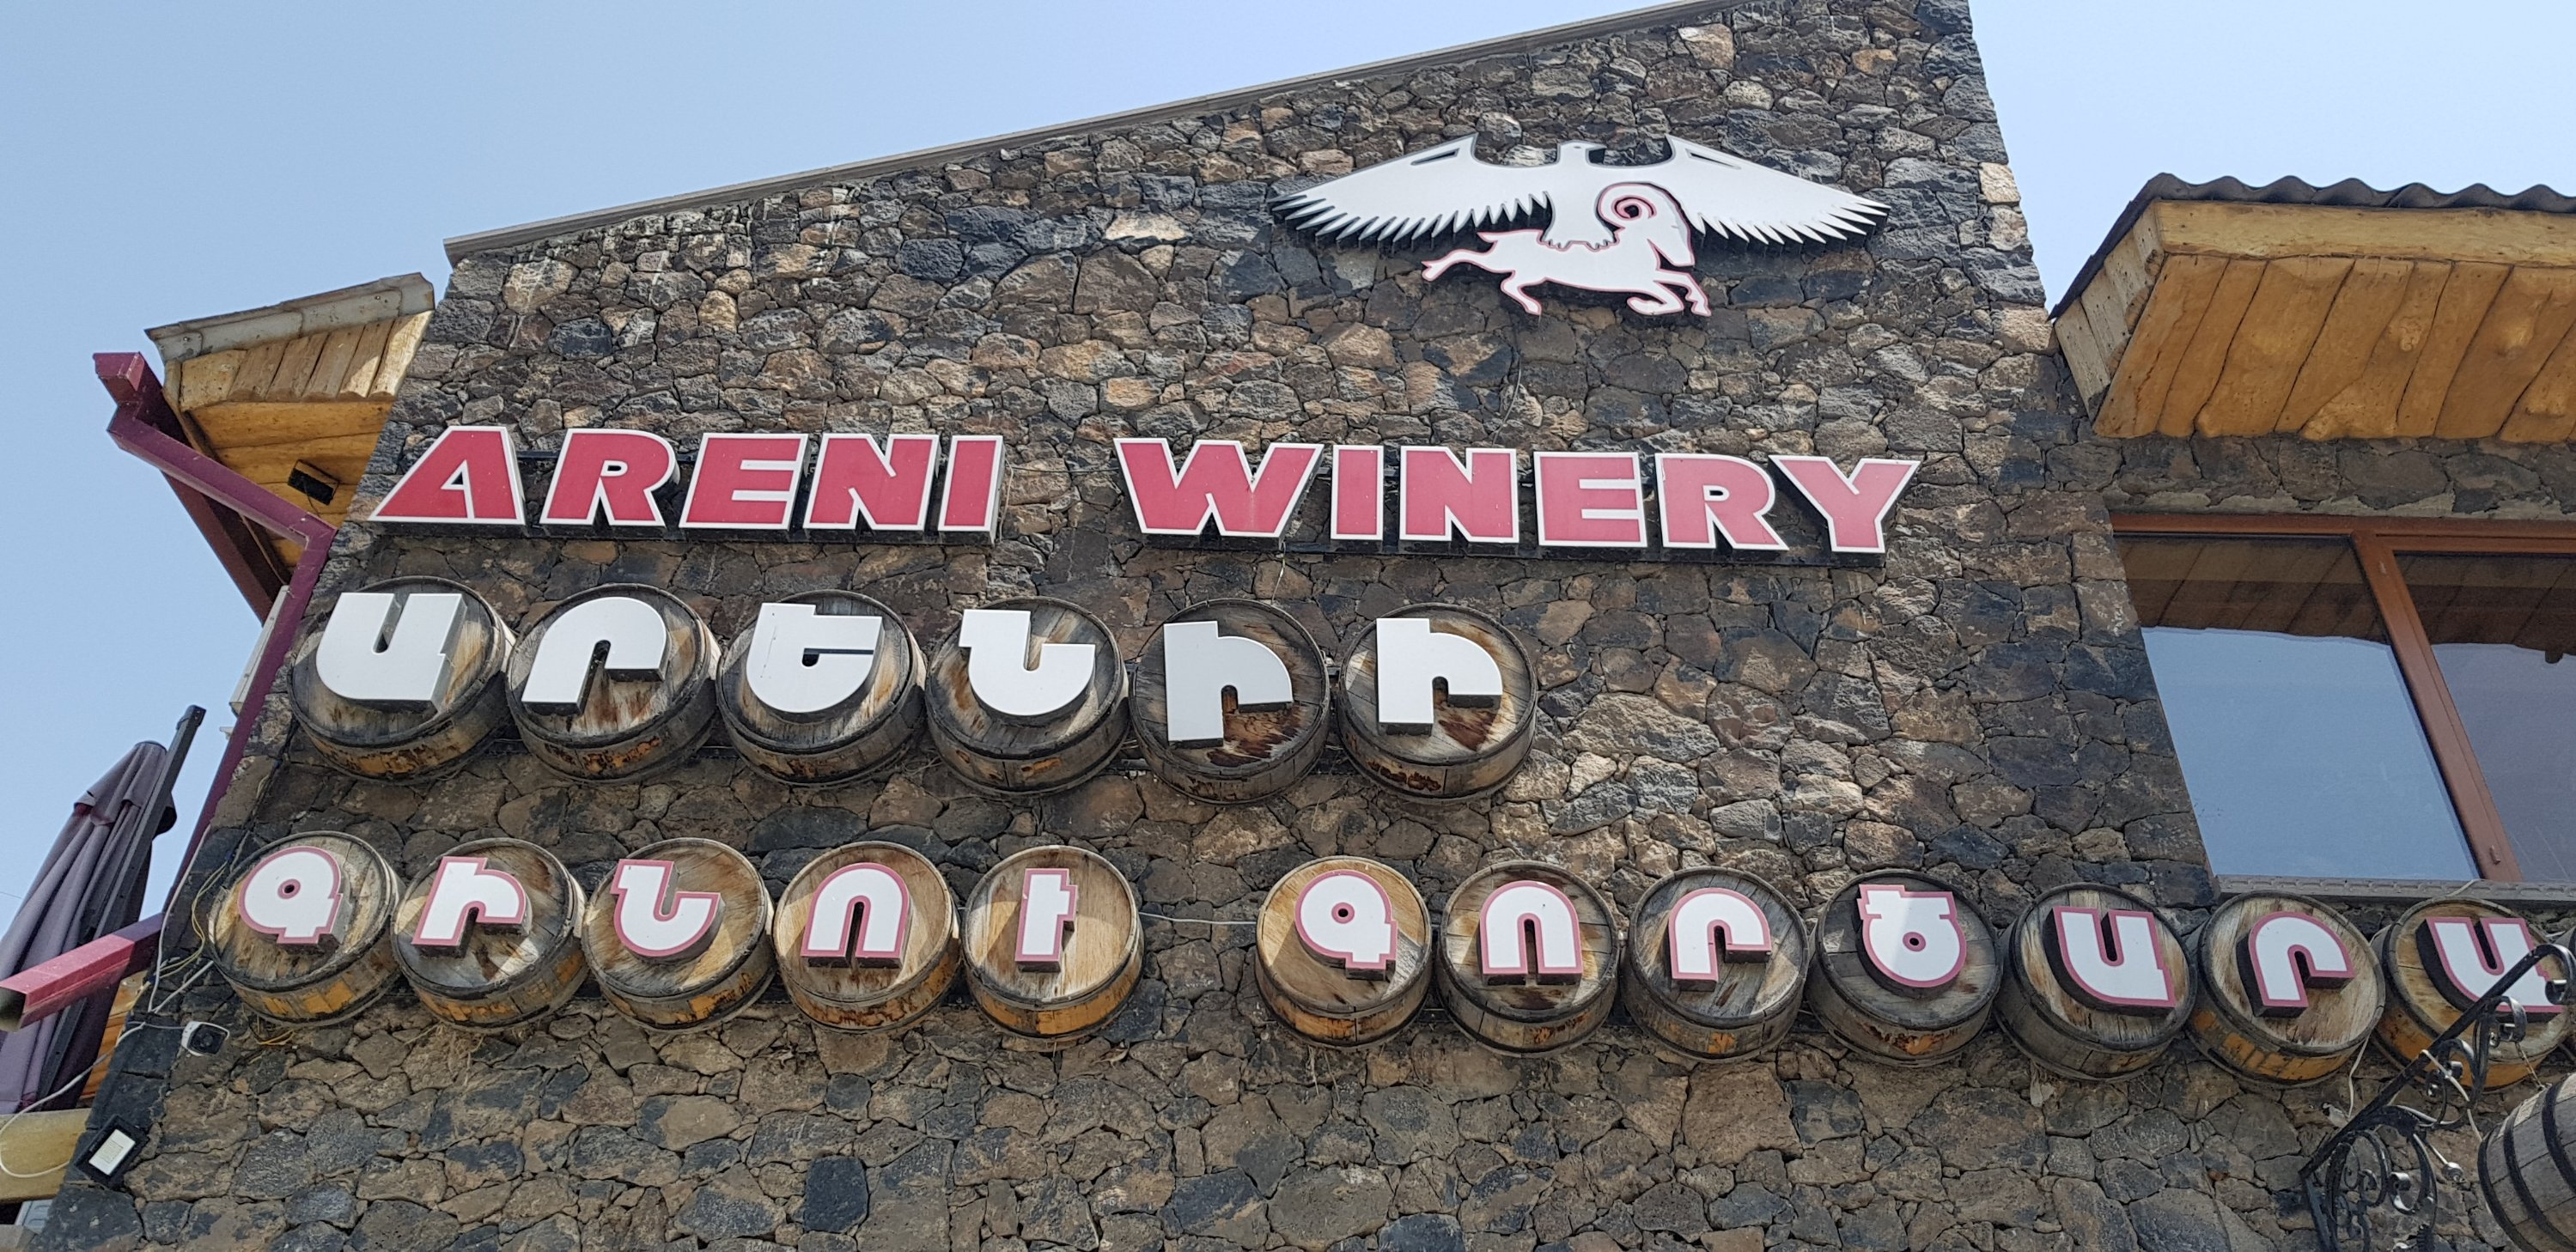 Entrance to Areni wine factory